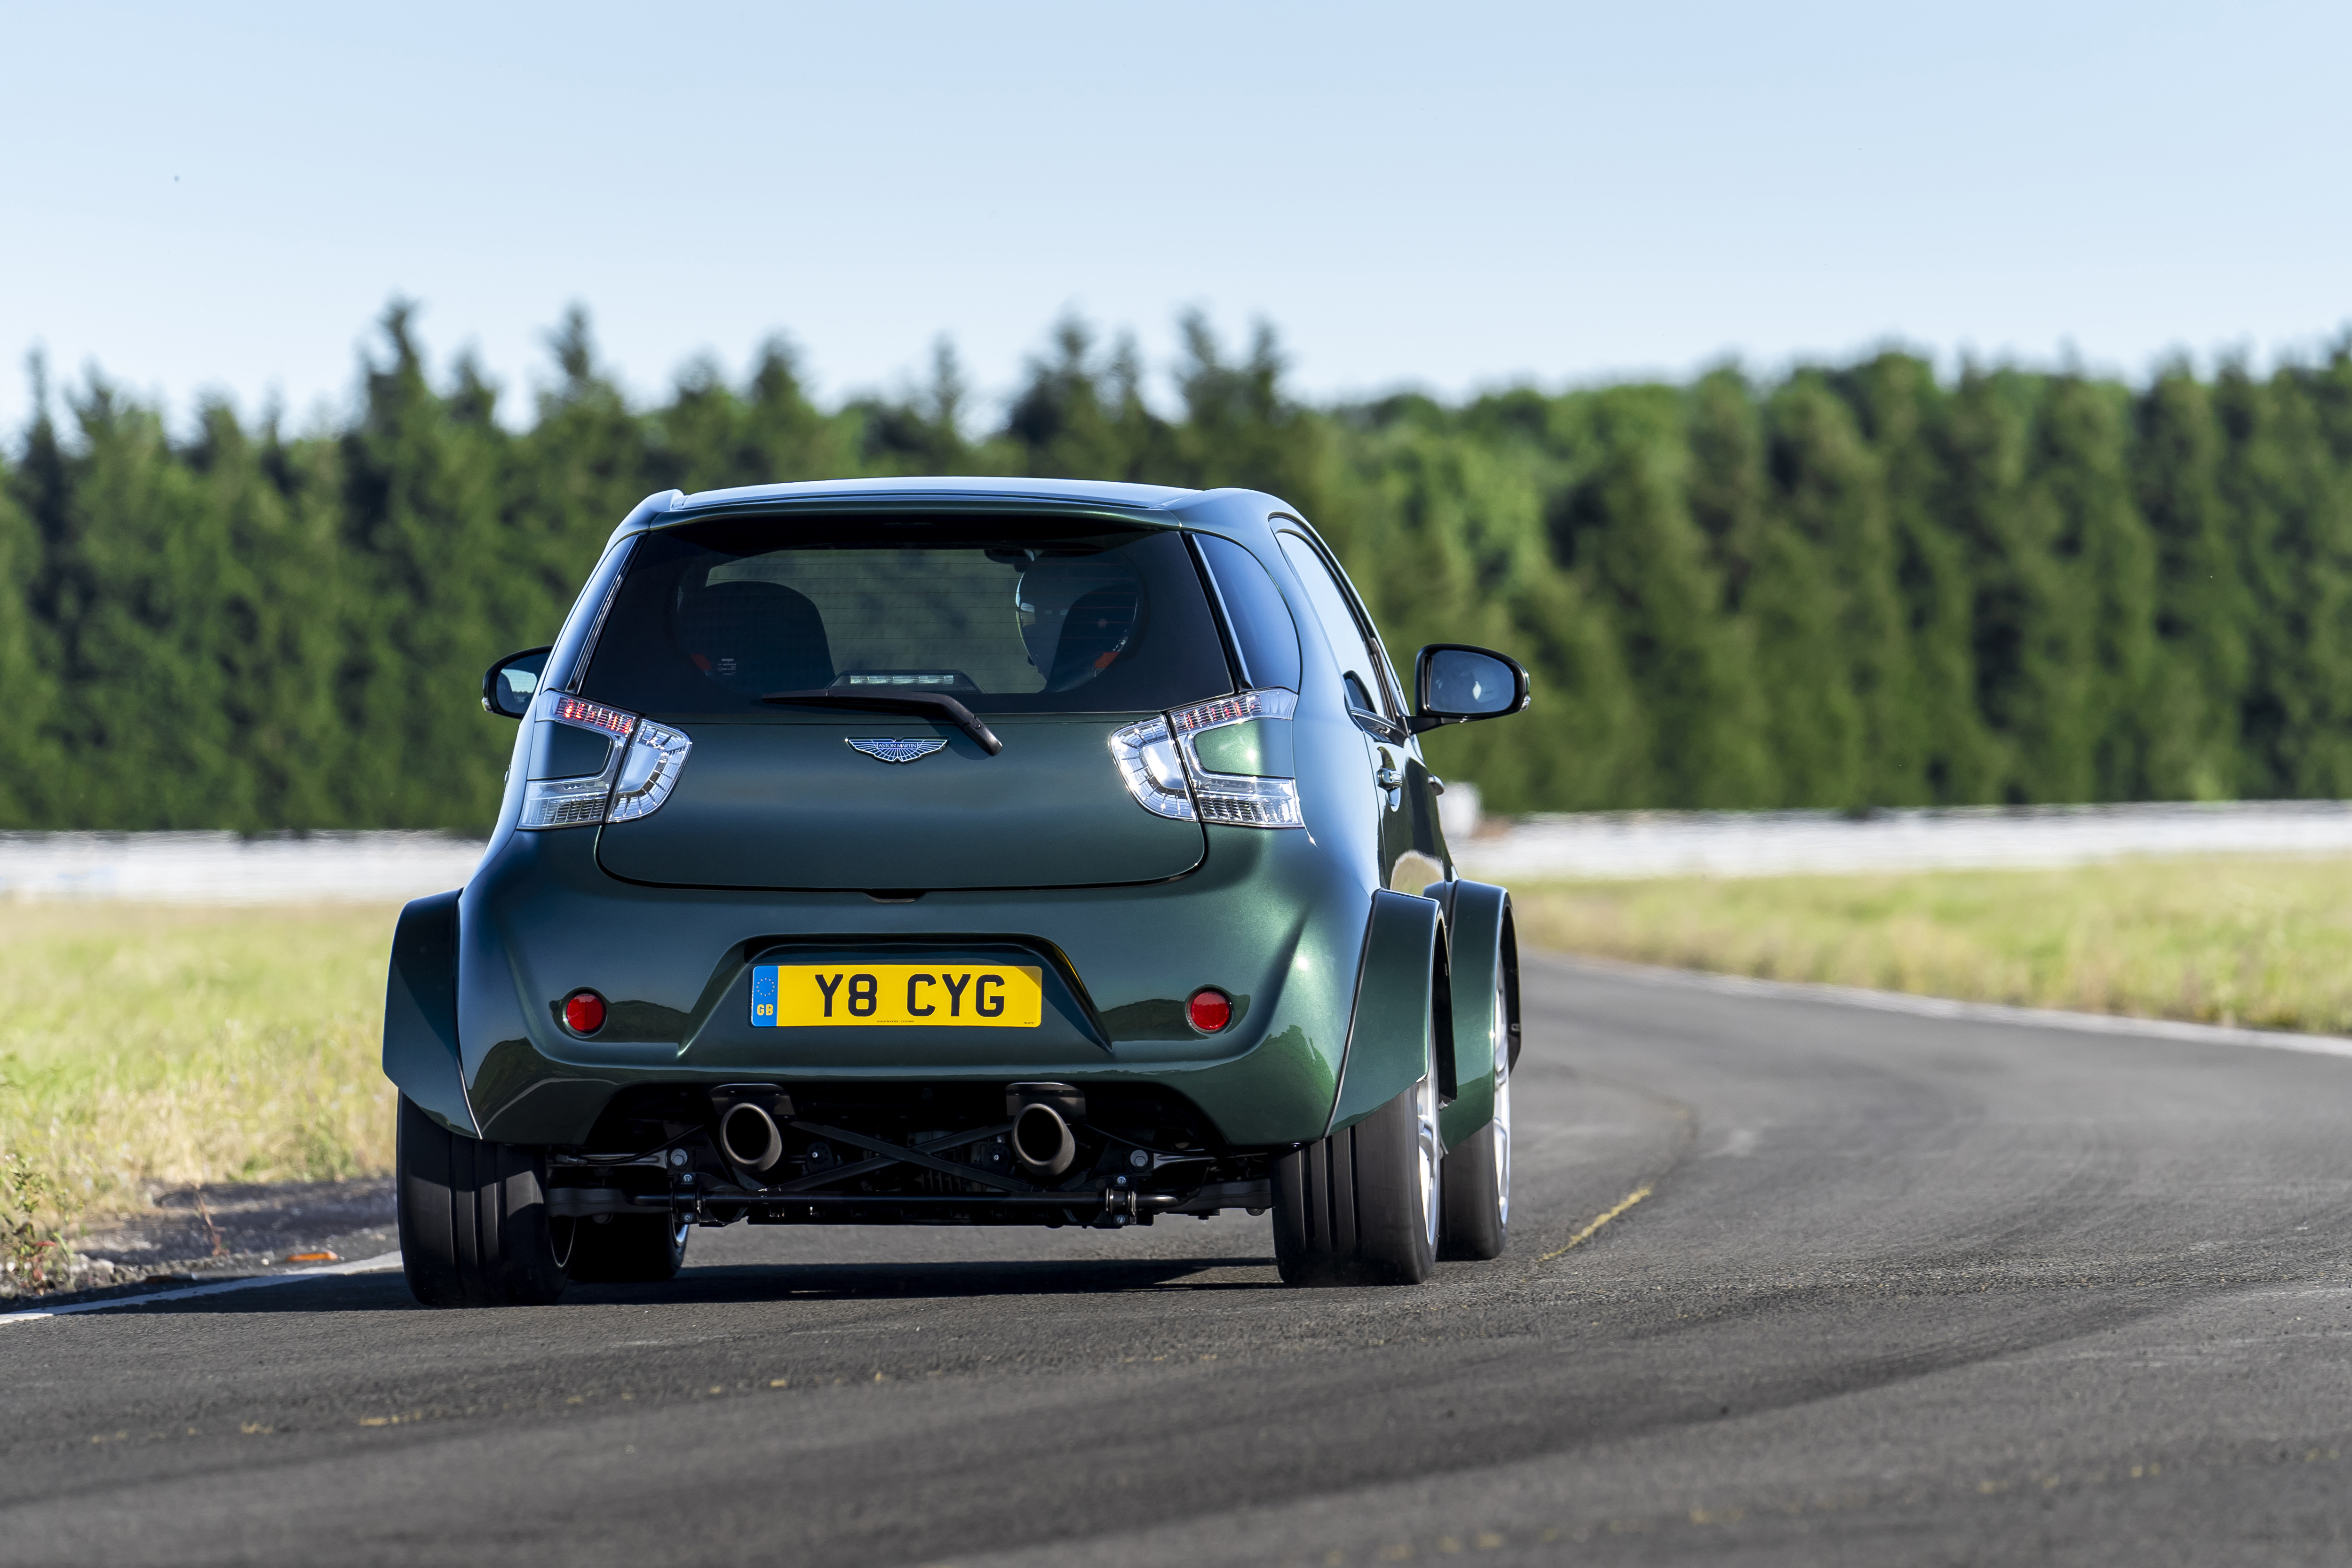 Aston Martin V8 Cygnet- The Ultimate City Car